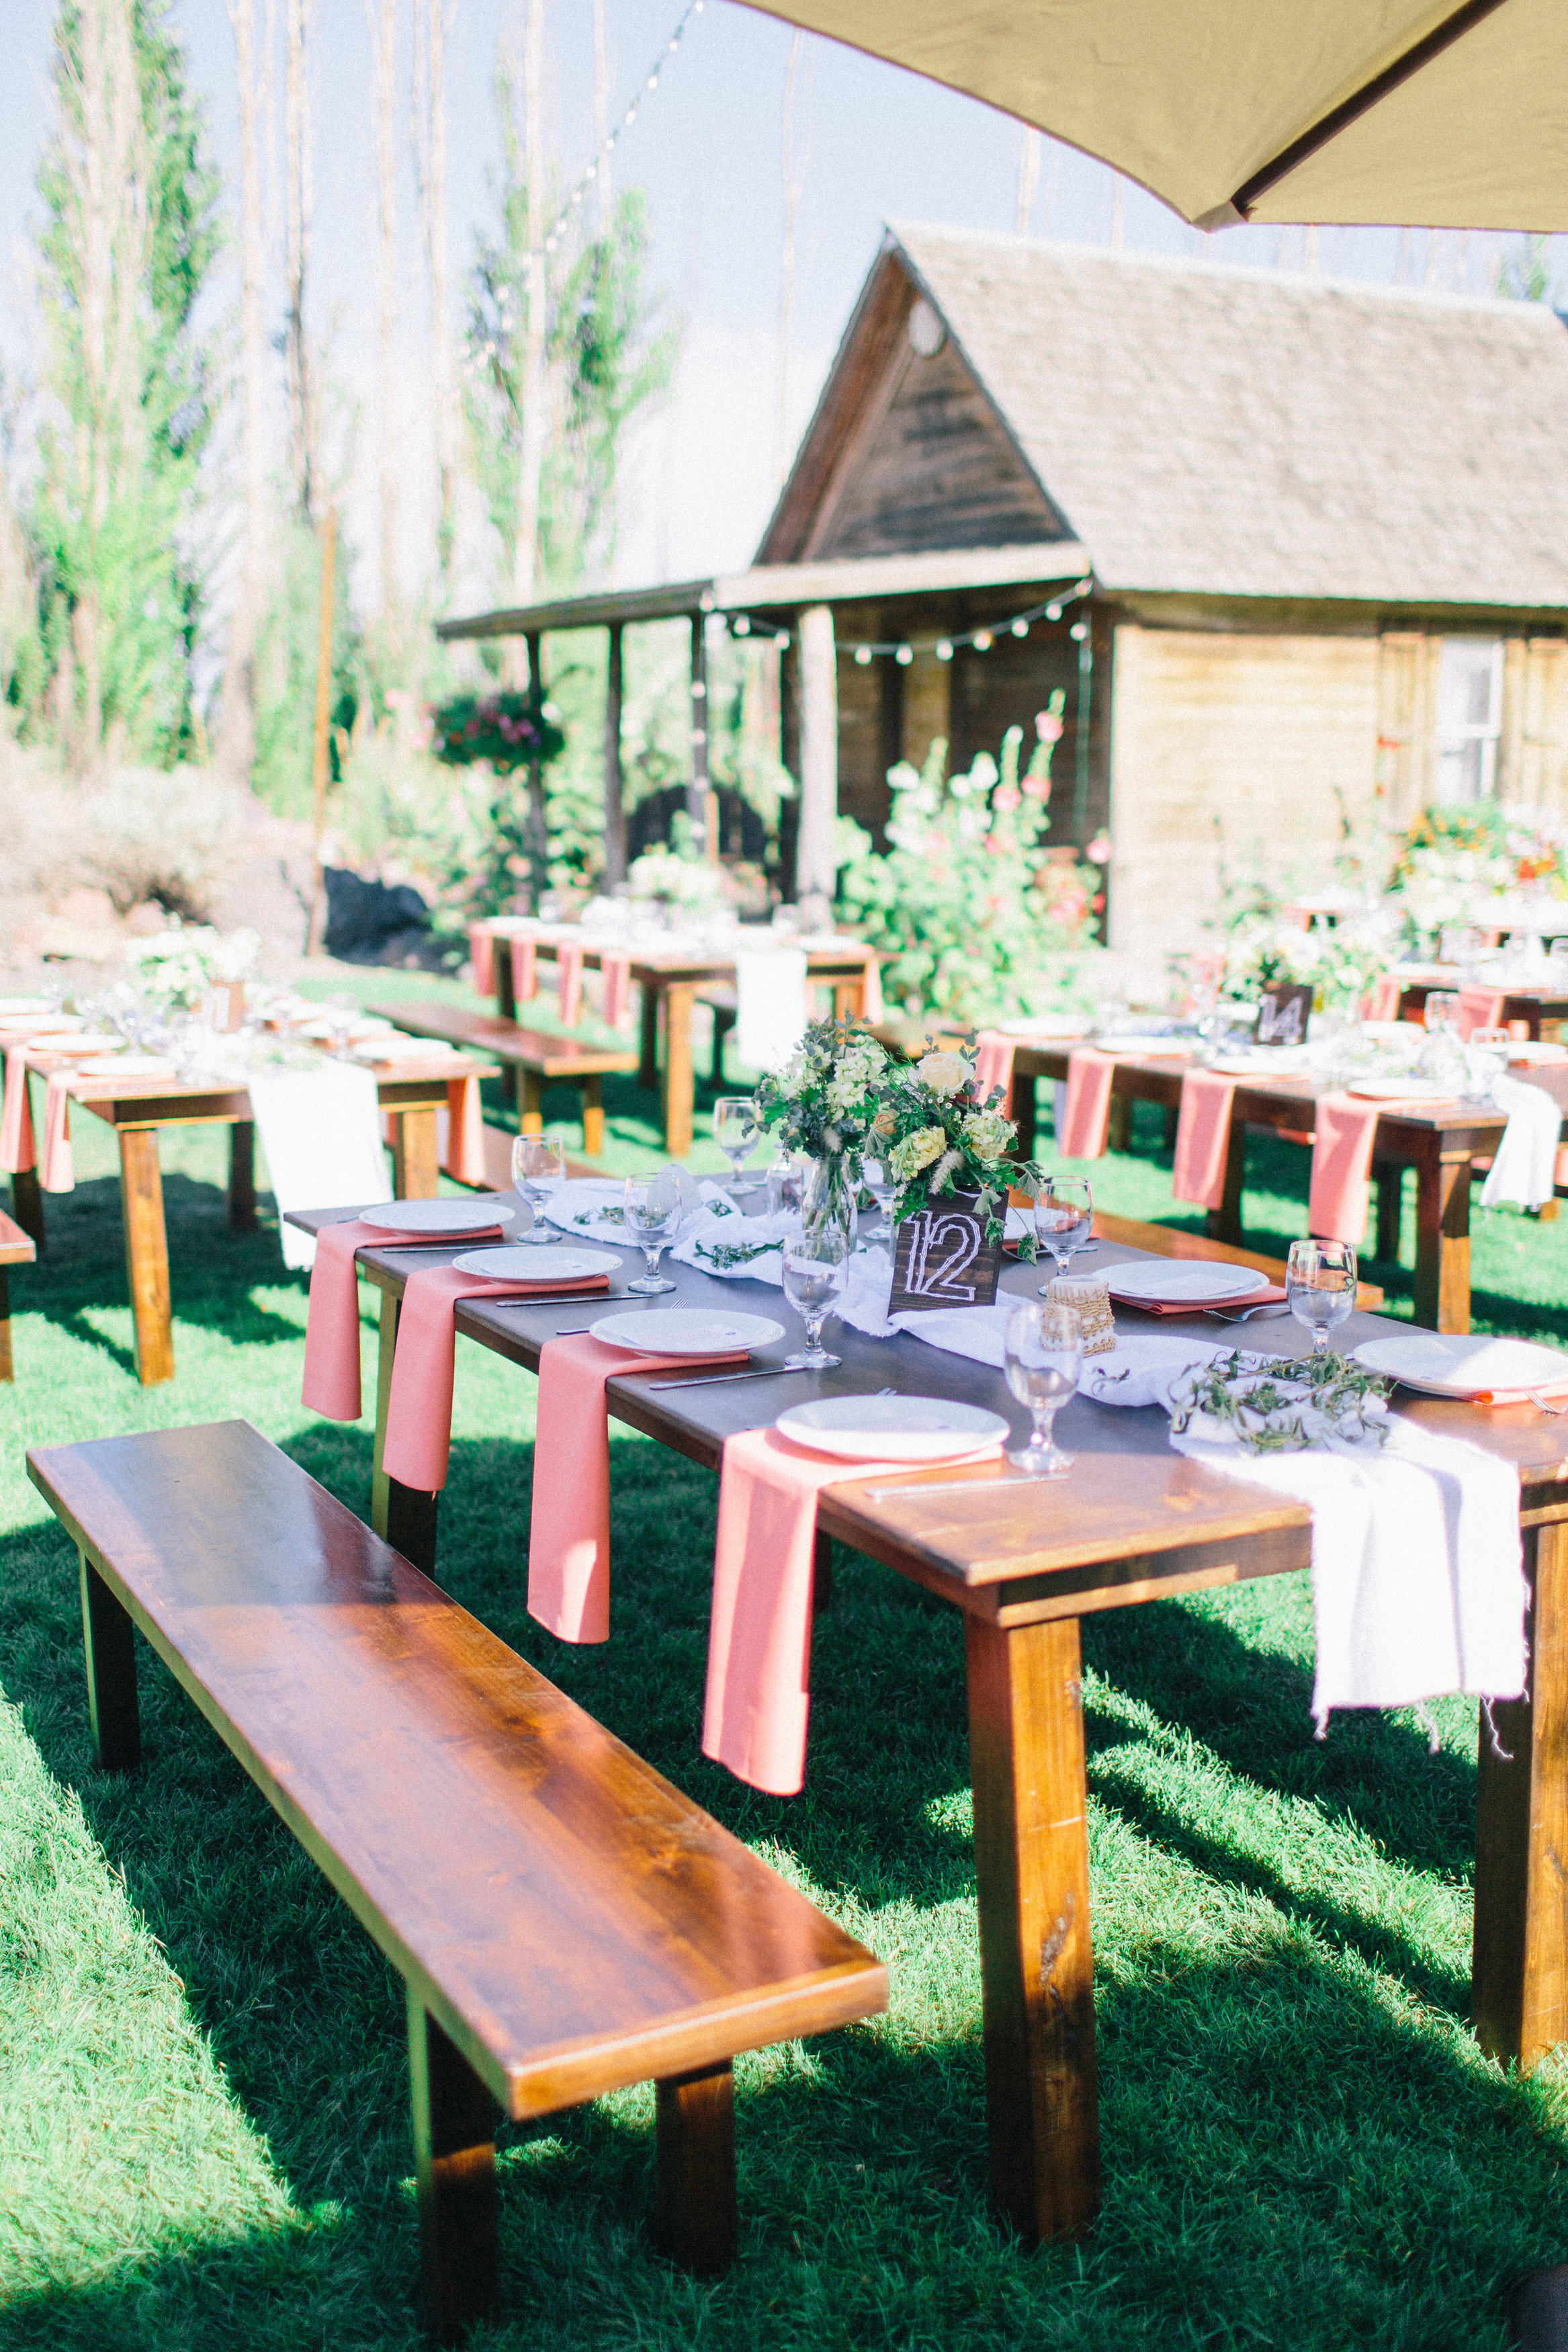 Ira and Lucy Wedding Coordination, Aga Jones Photography, Still Water Hollow